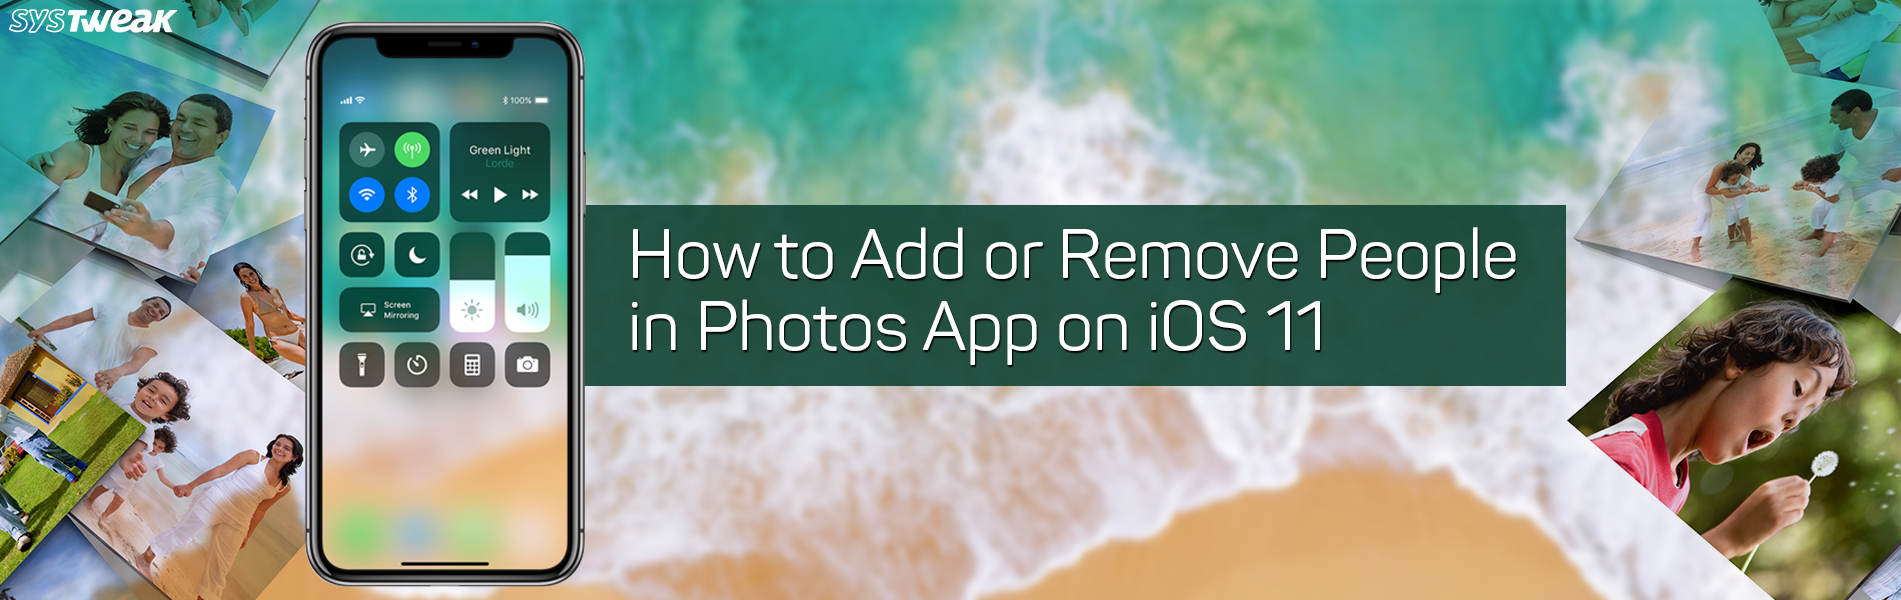 How To Add Or Remove People In Photos App On iOS 11